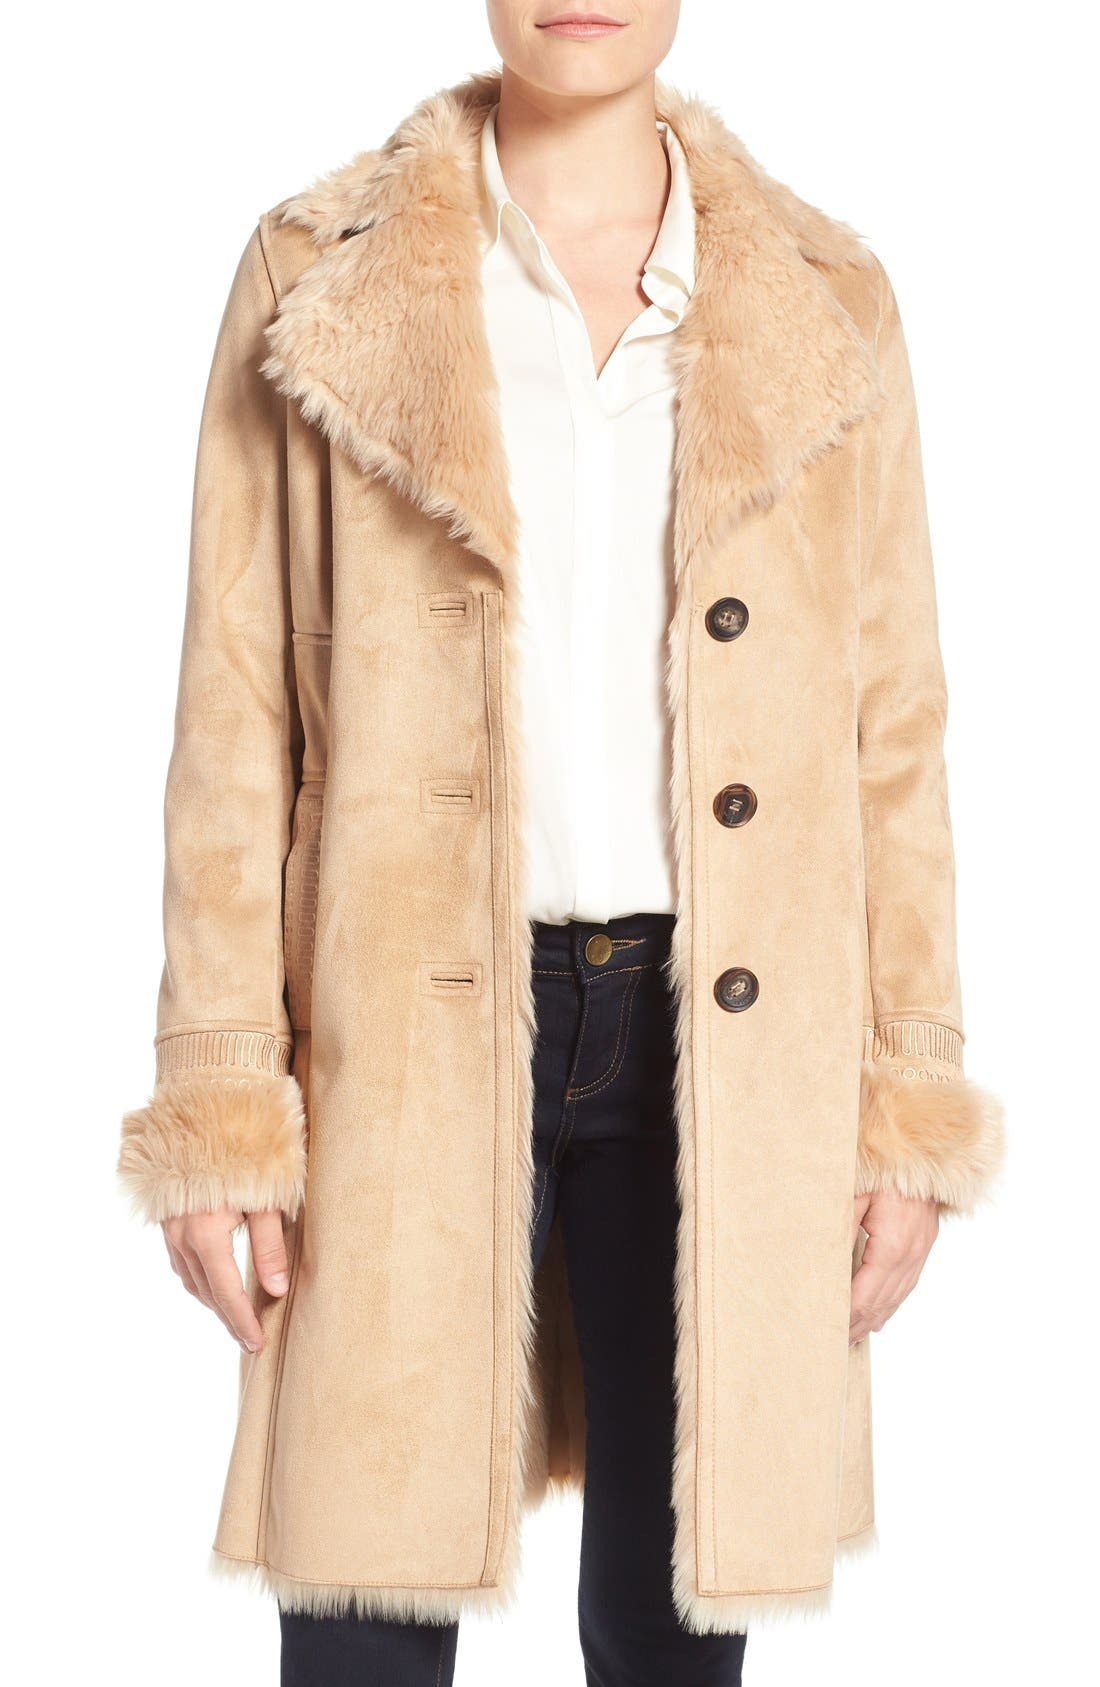 Alternate Image 1 Selected - Badgley Mischka Faux Shearling Lined Coat